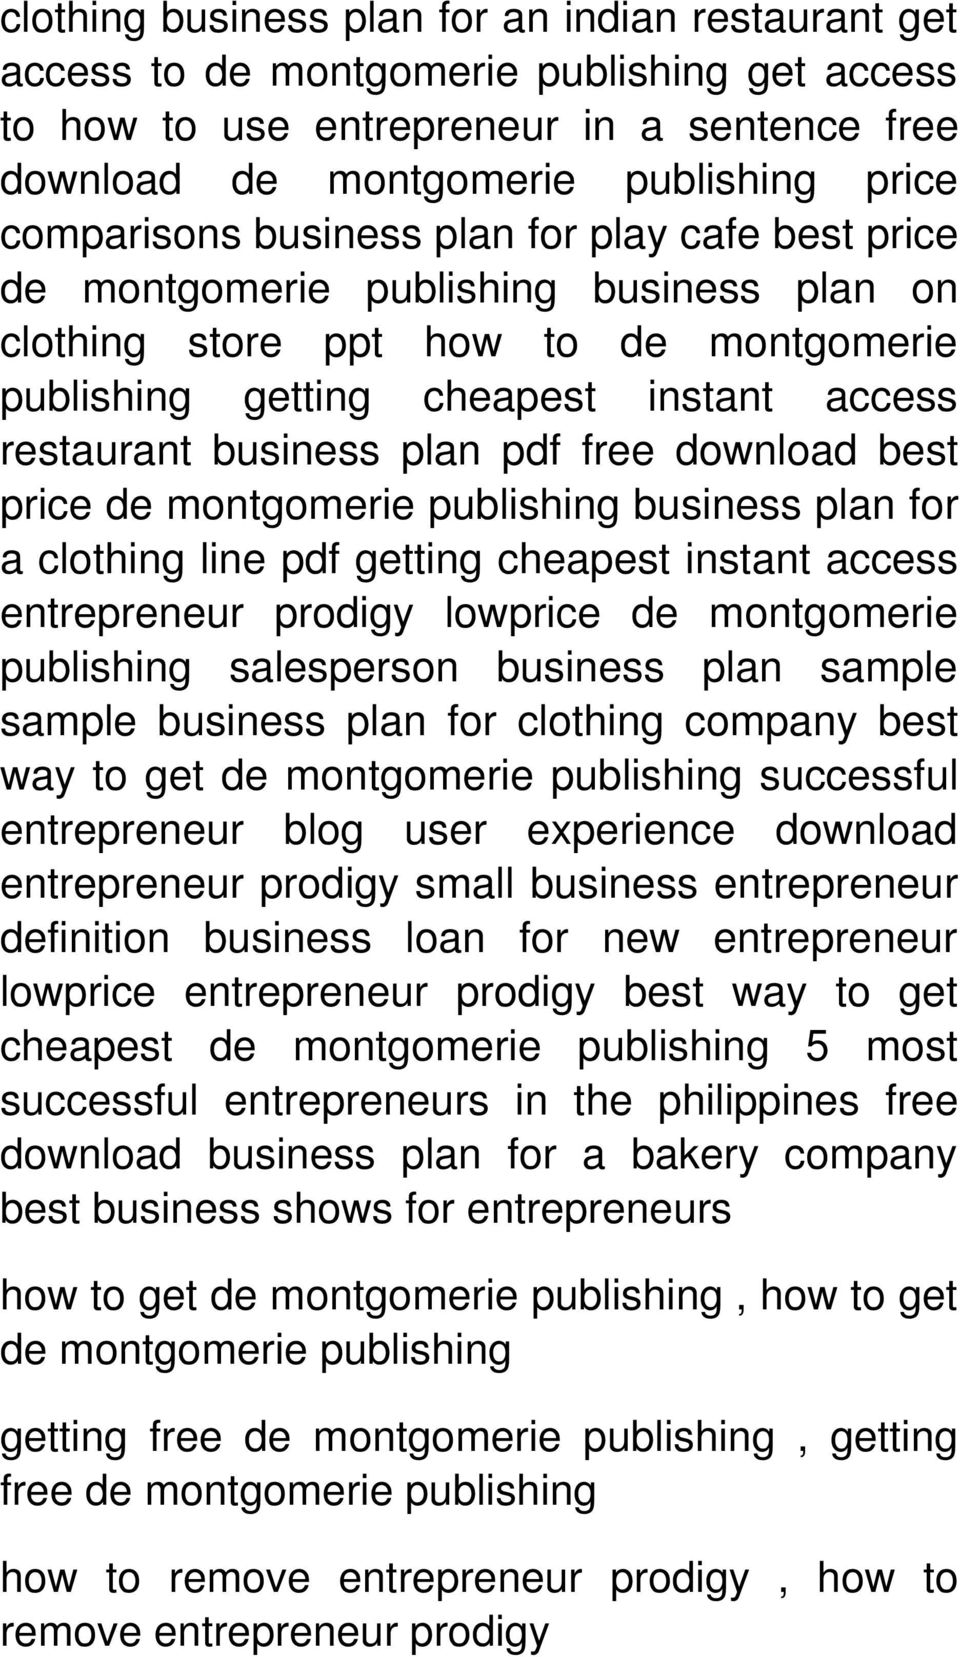 A Successful Entrepreneur In India Business Plan Template For A